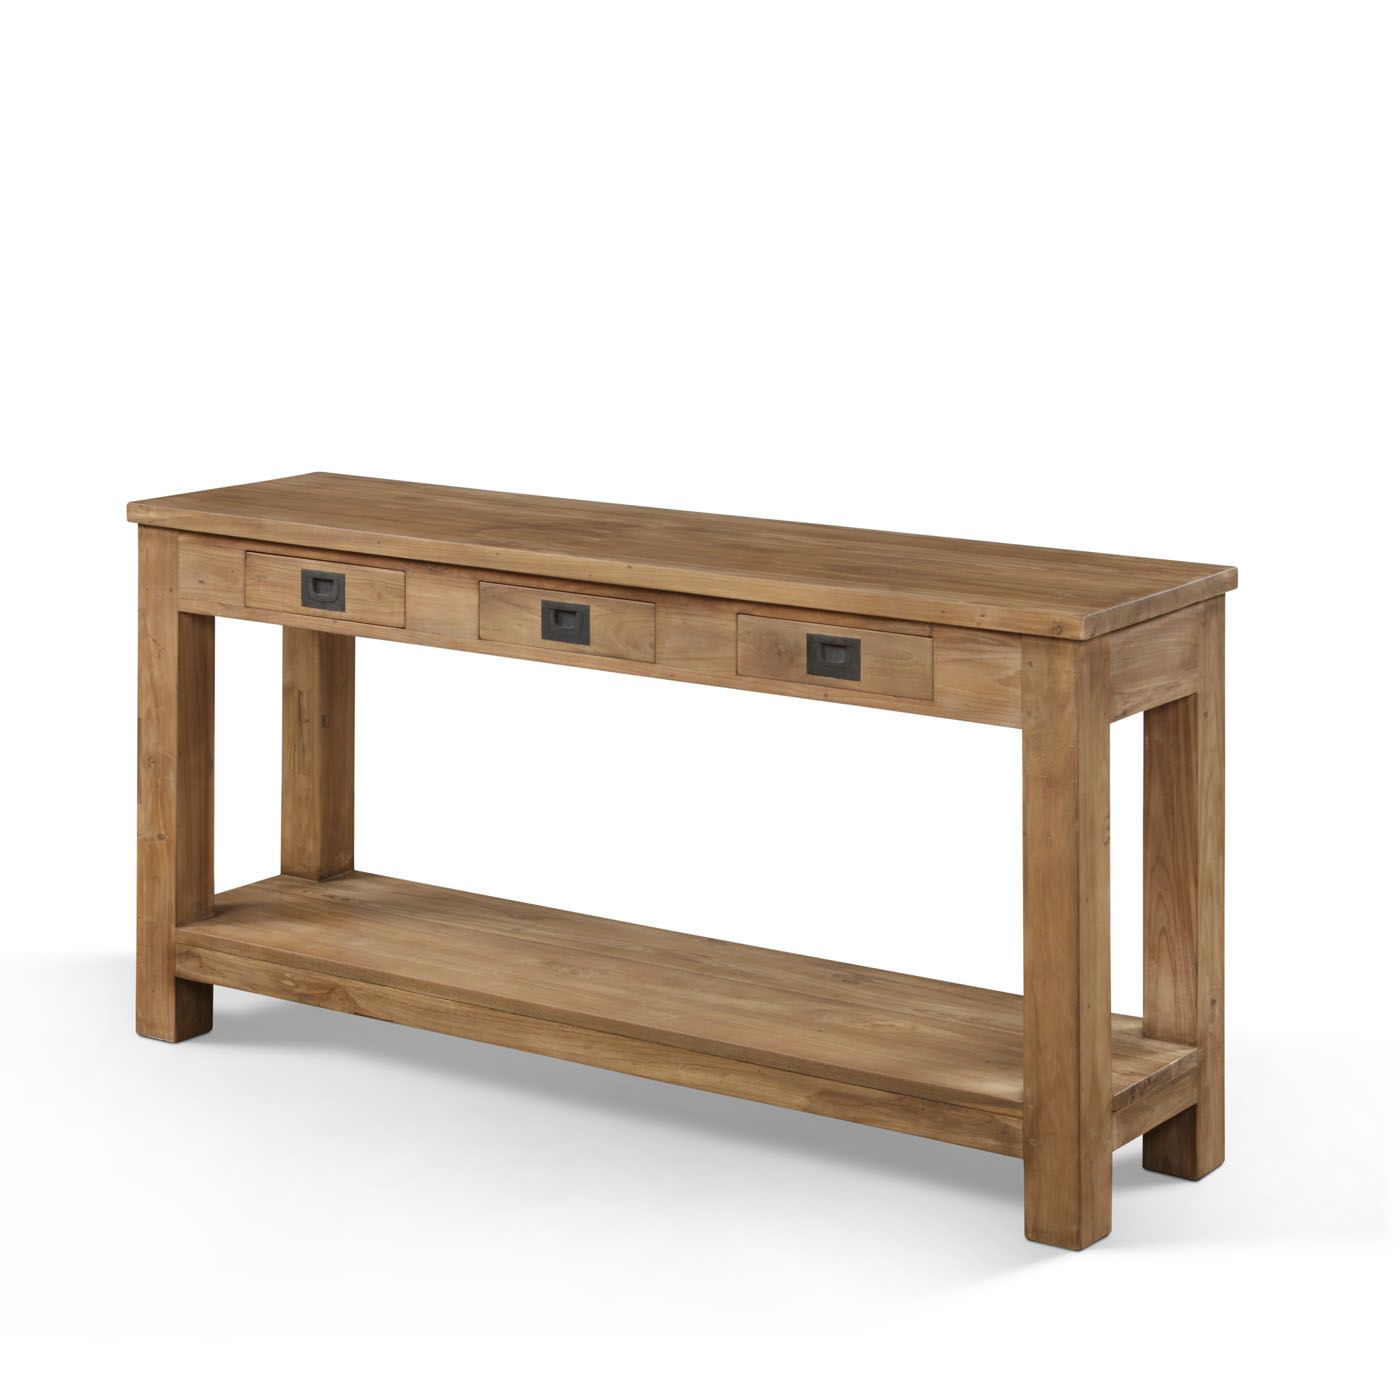 Furniture Long And Narrow Oak Console Table With Storage Drawer Metal Handle For Hallway Ideas